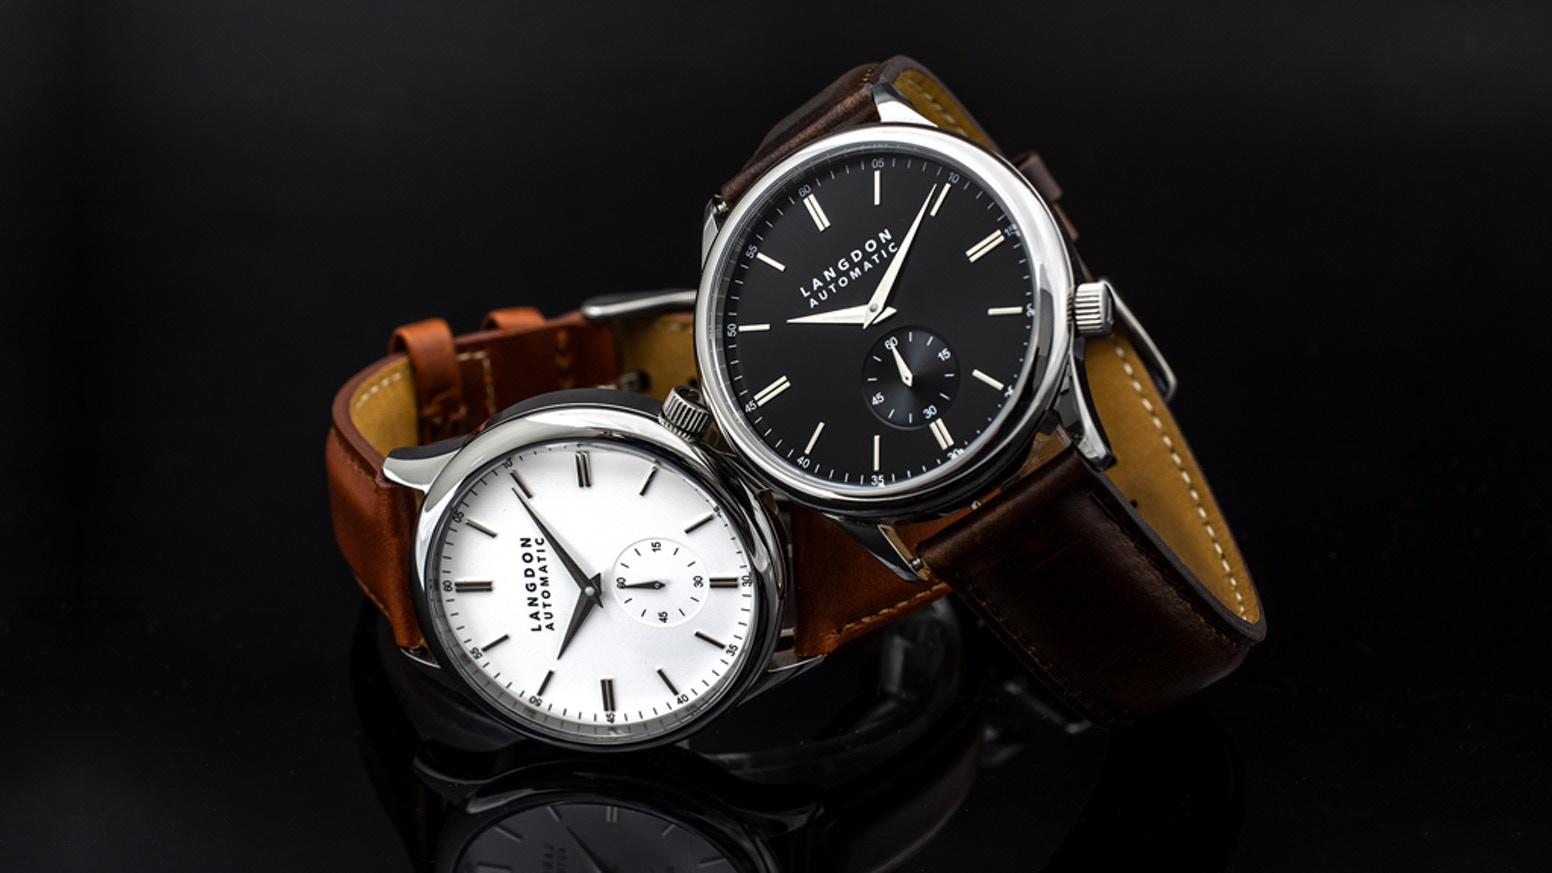 Vintage inspired timepieces at an unbelivably affordable price.